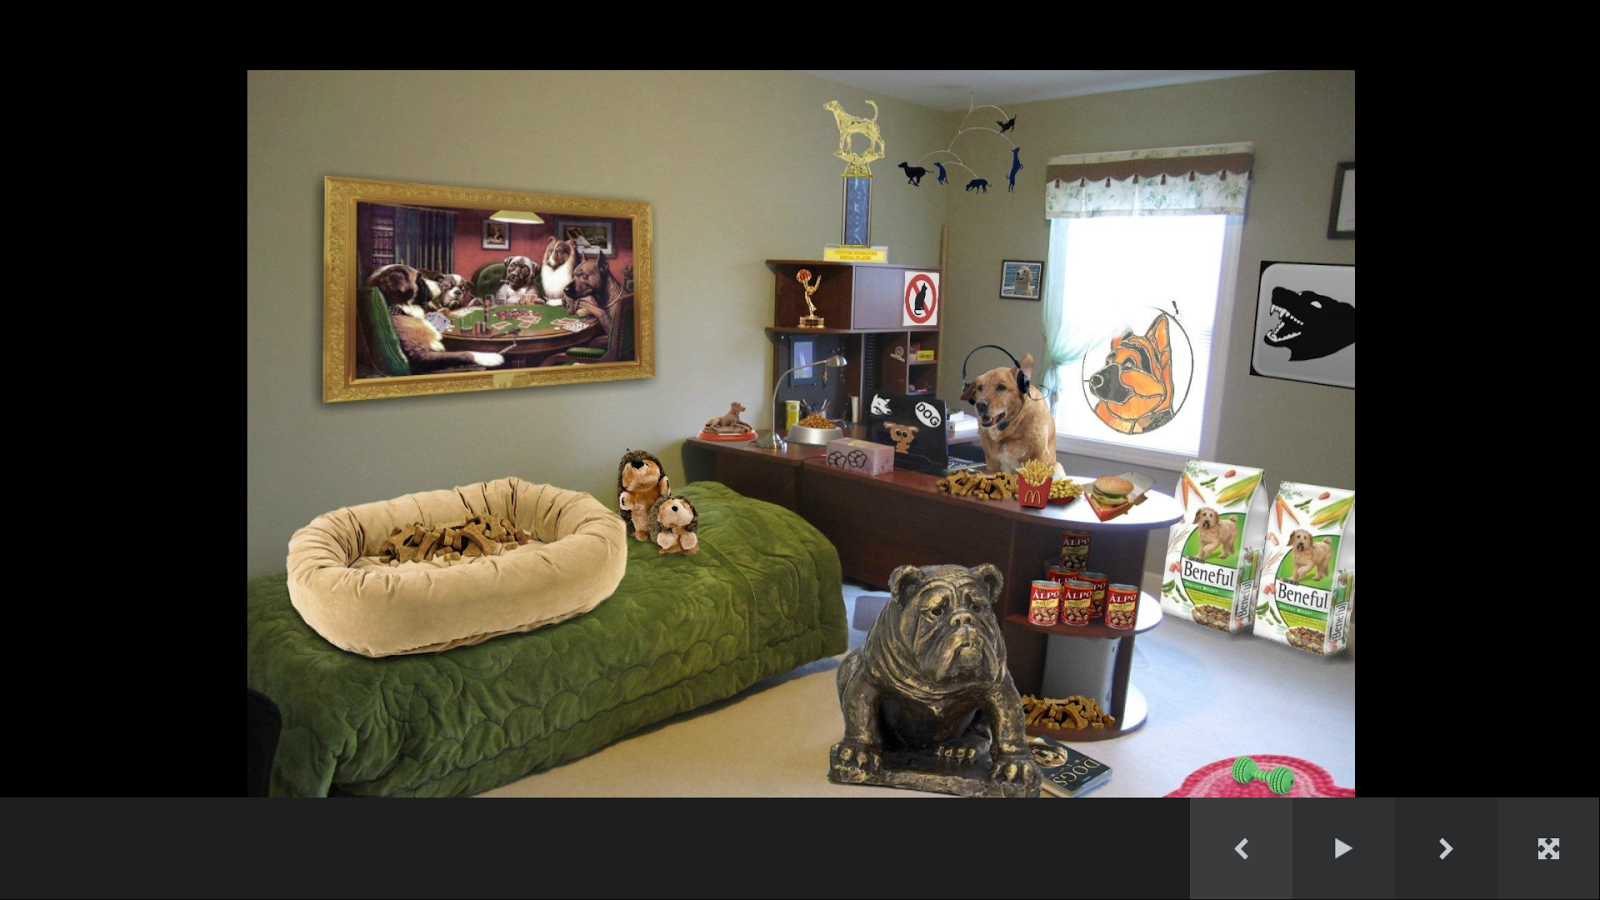 Dog room decor android apps on google play for Room design app using photos